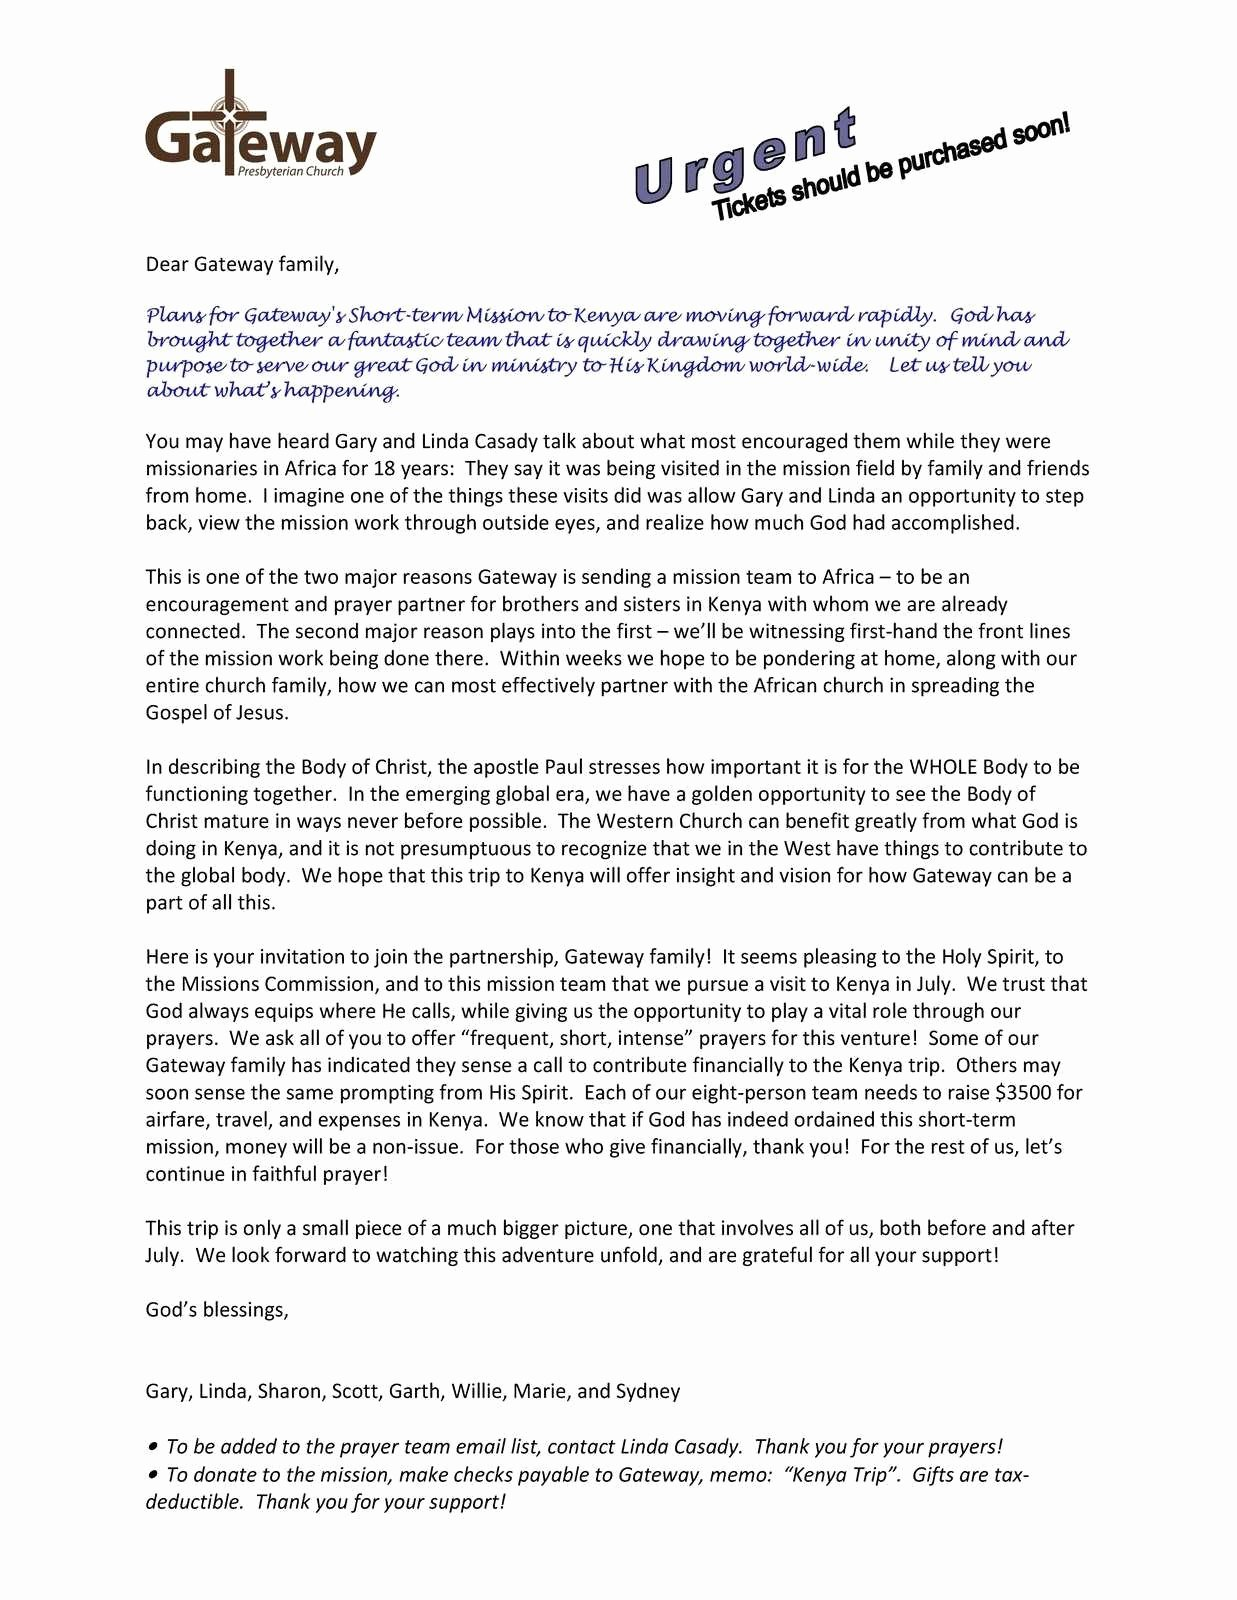 Missions Trip Support Letter Template New Mission Trip Letter Template Support Collection